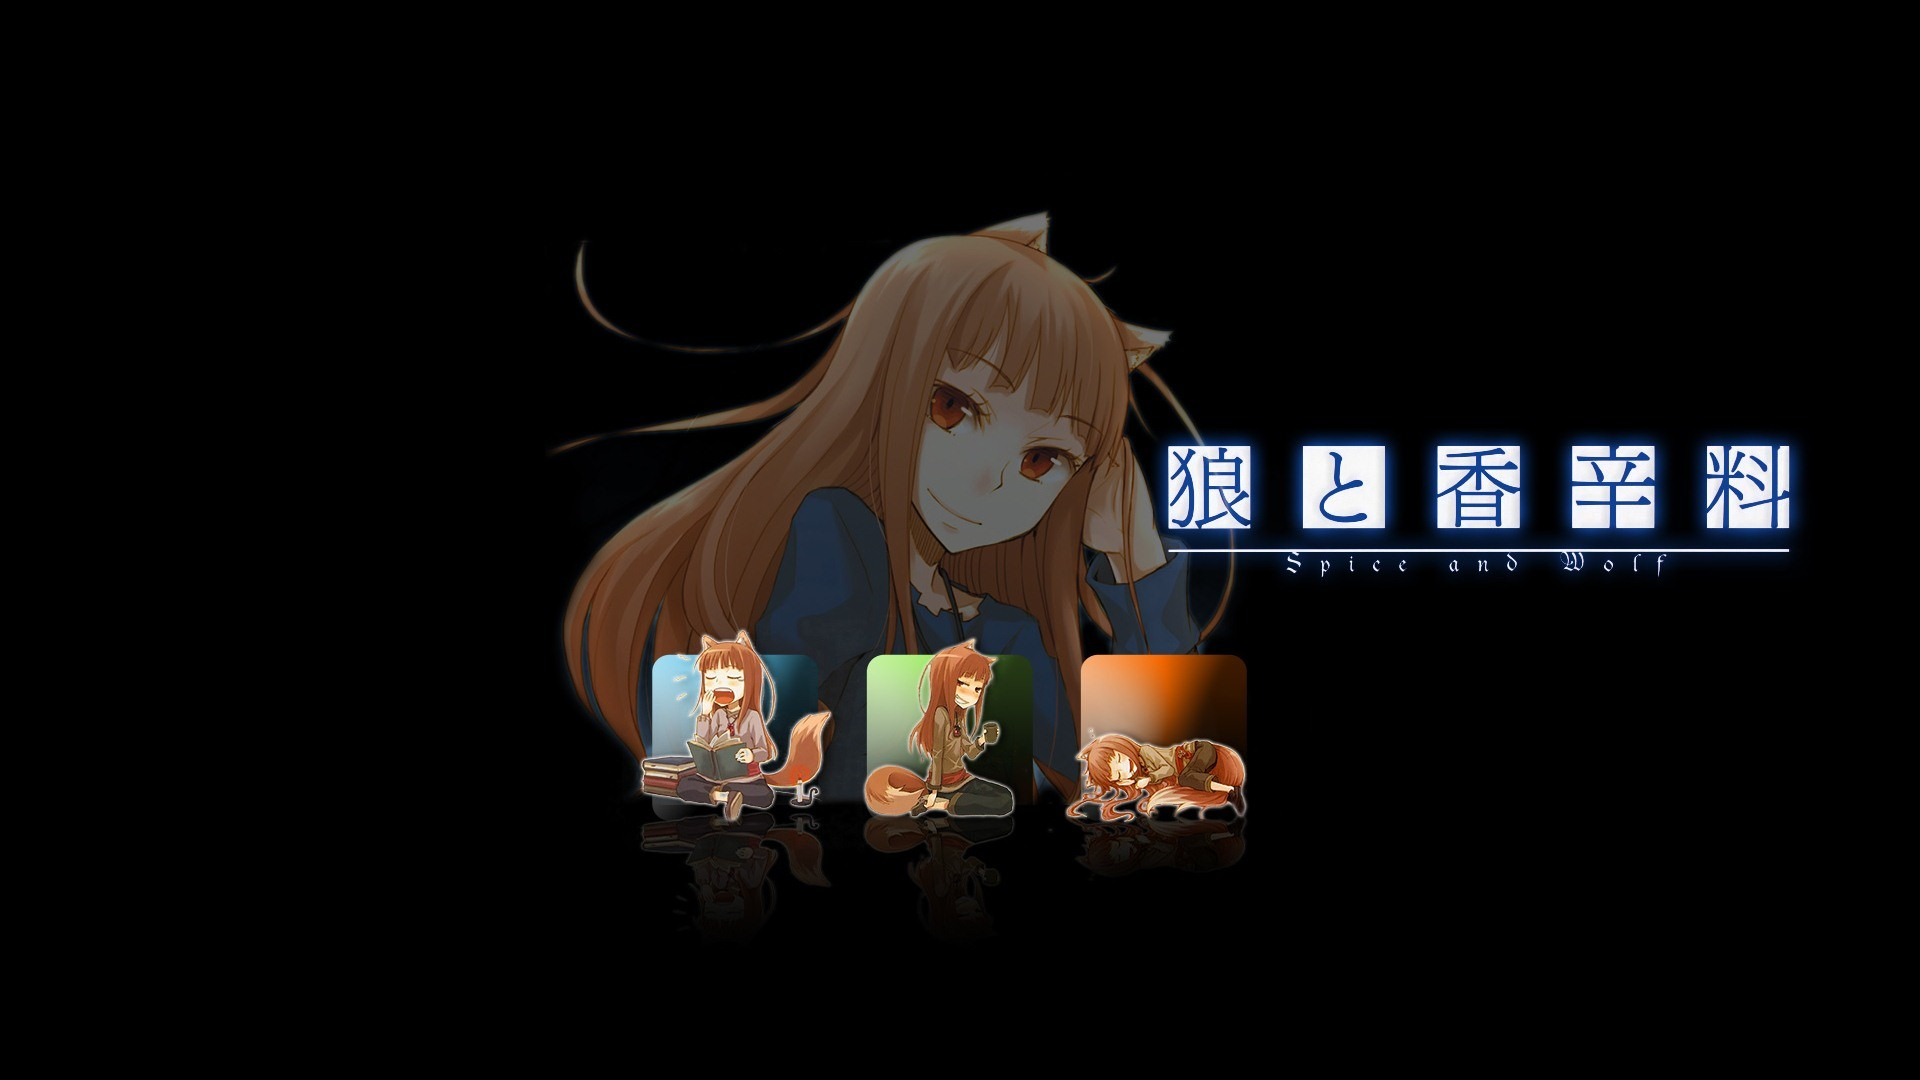 Spice and Wolf HD wallpapers #23 – 1920×1080.